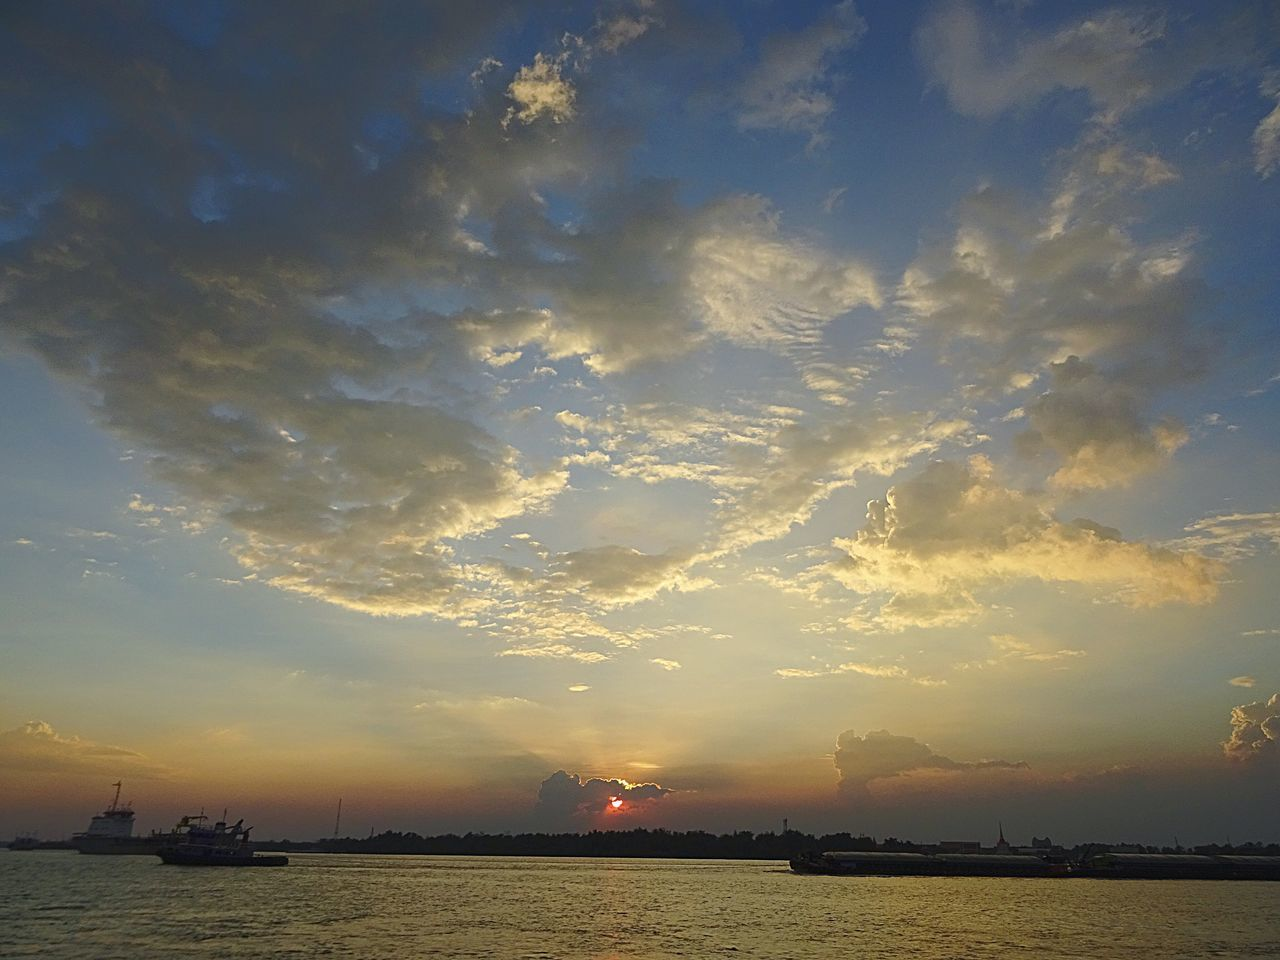 sunset, sky, cloud - sky, water, scenics, beauty in nature, sea, nautical vessel, nature, transportation, tranquility, outdoors, sun, tranquil scene, no people, silhouette, moored, horizon over water, day